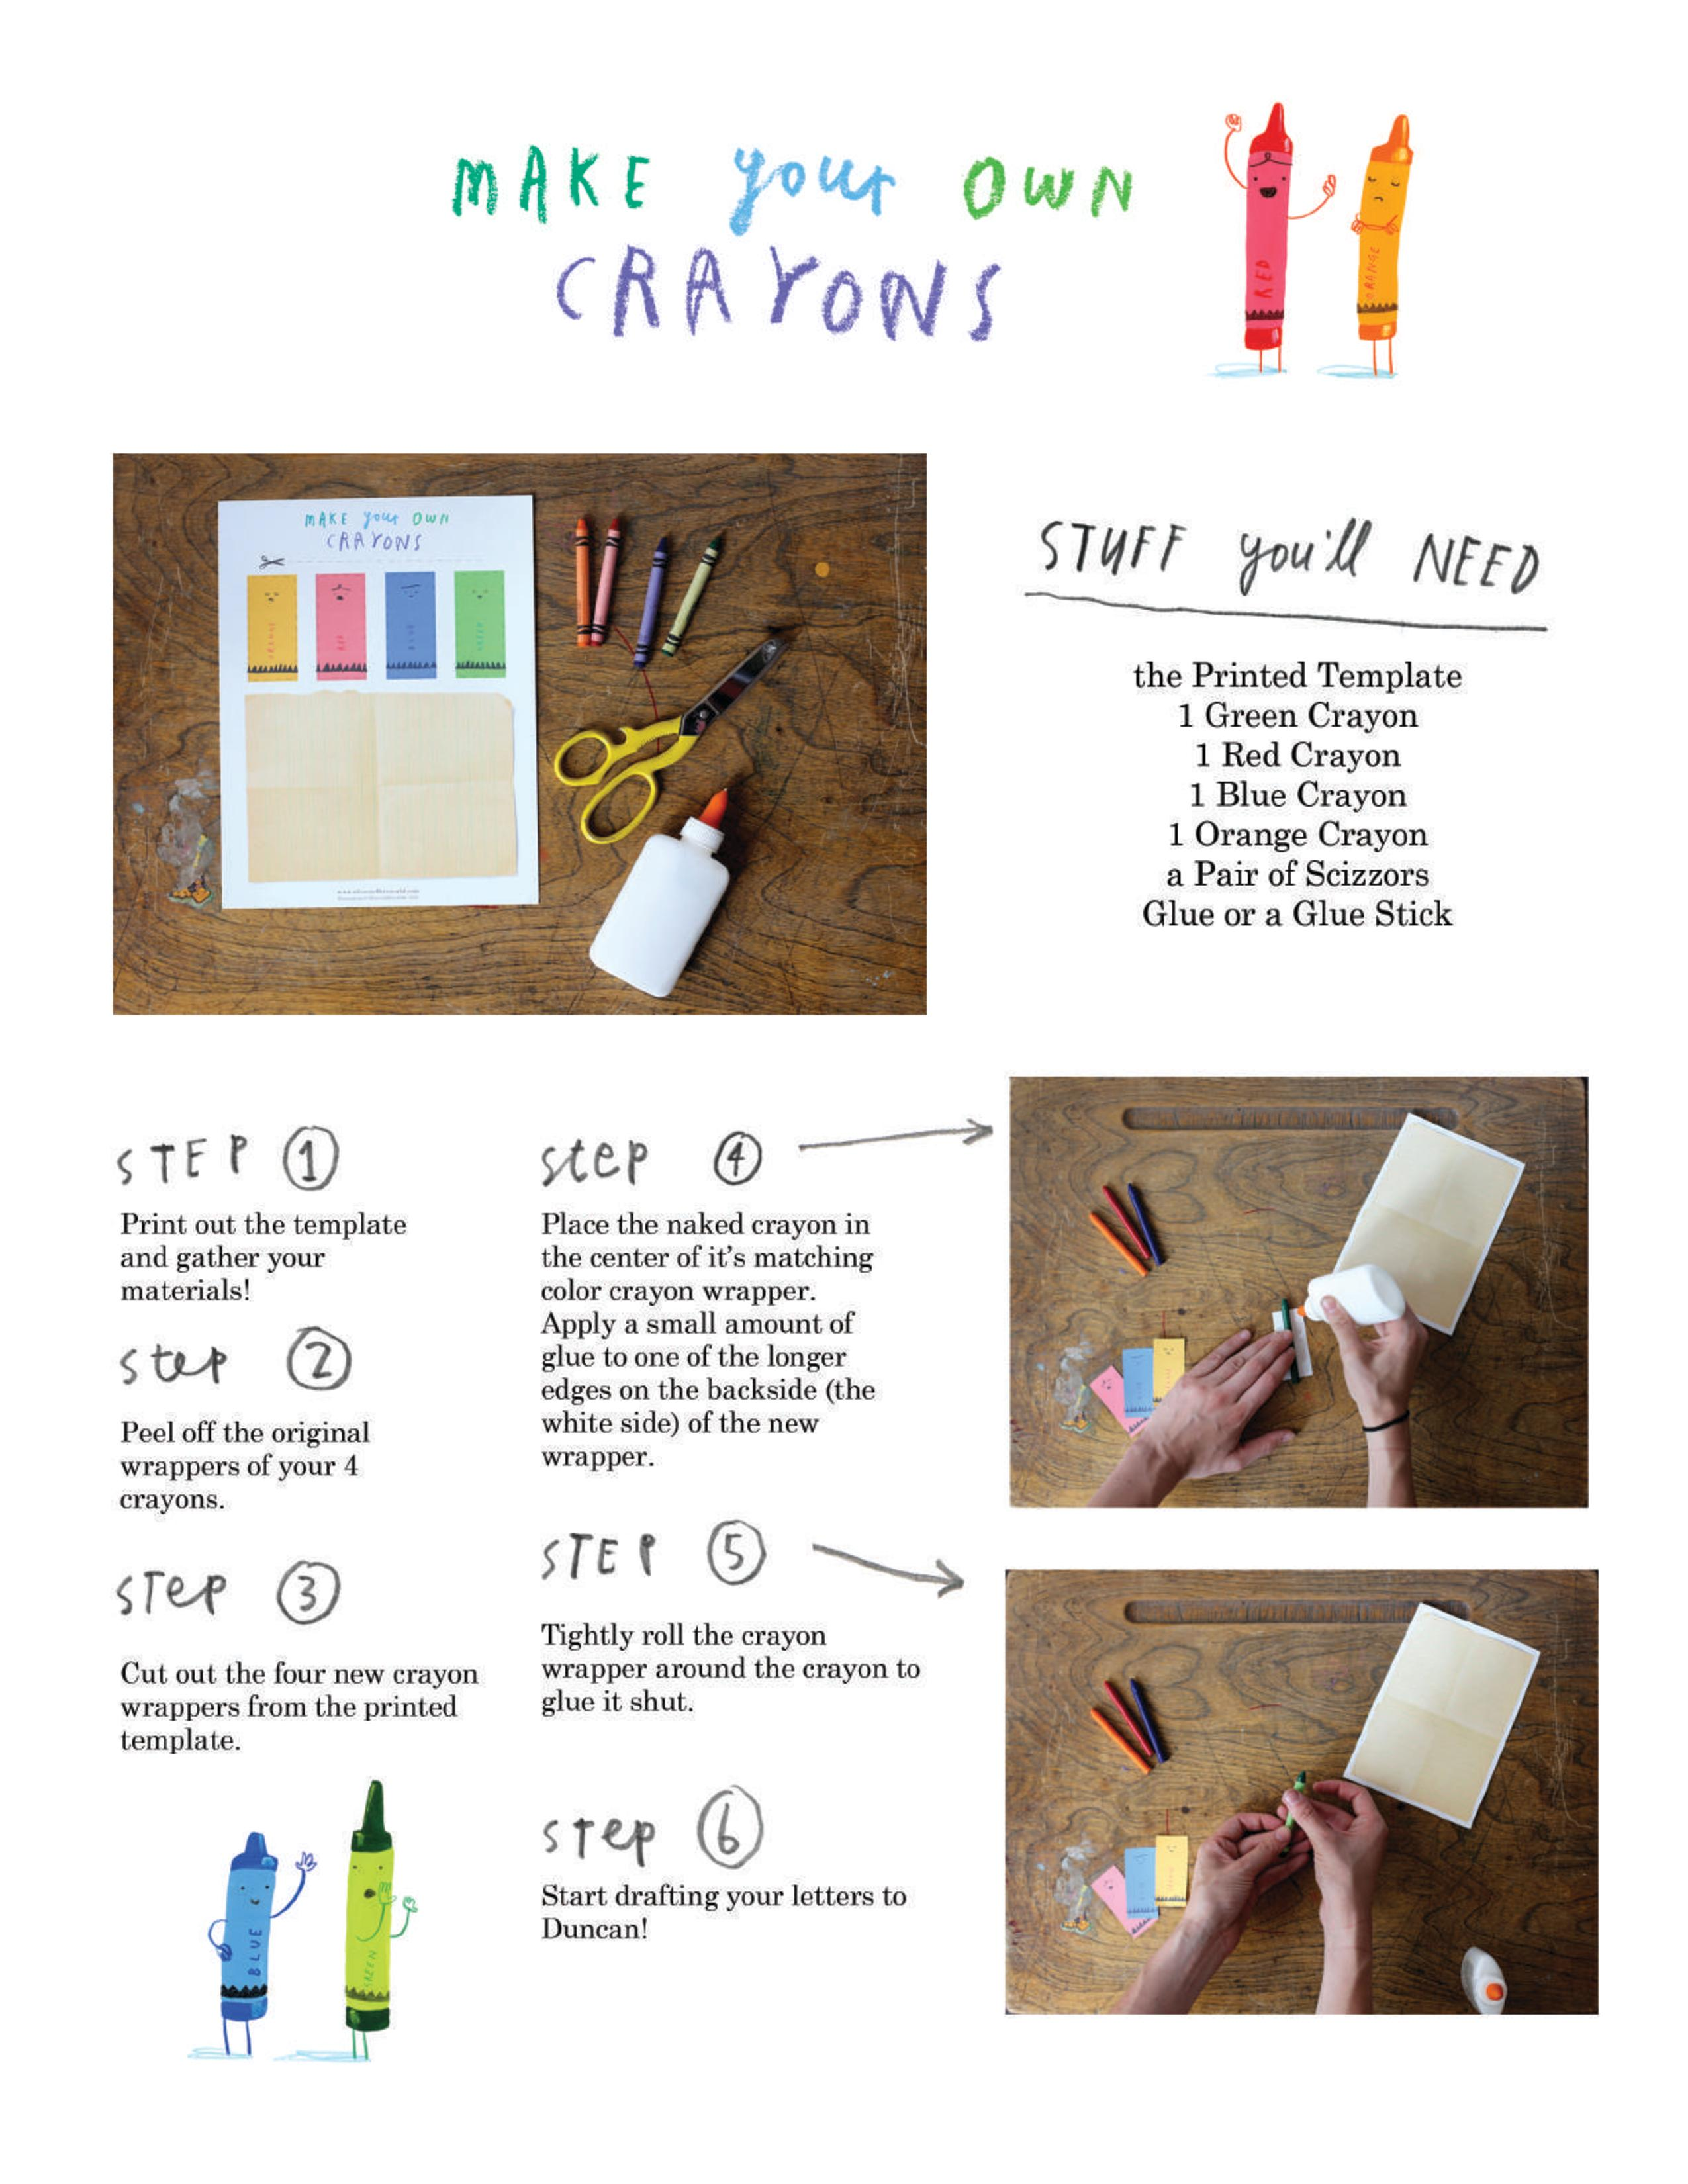 MakeYouOwnCrayons2-page-002